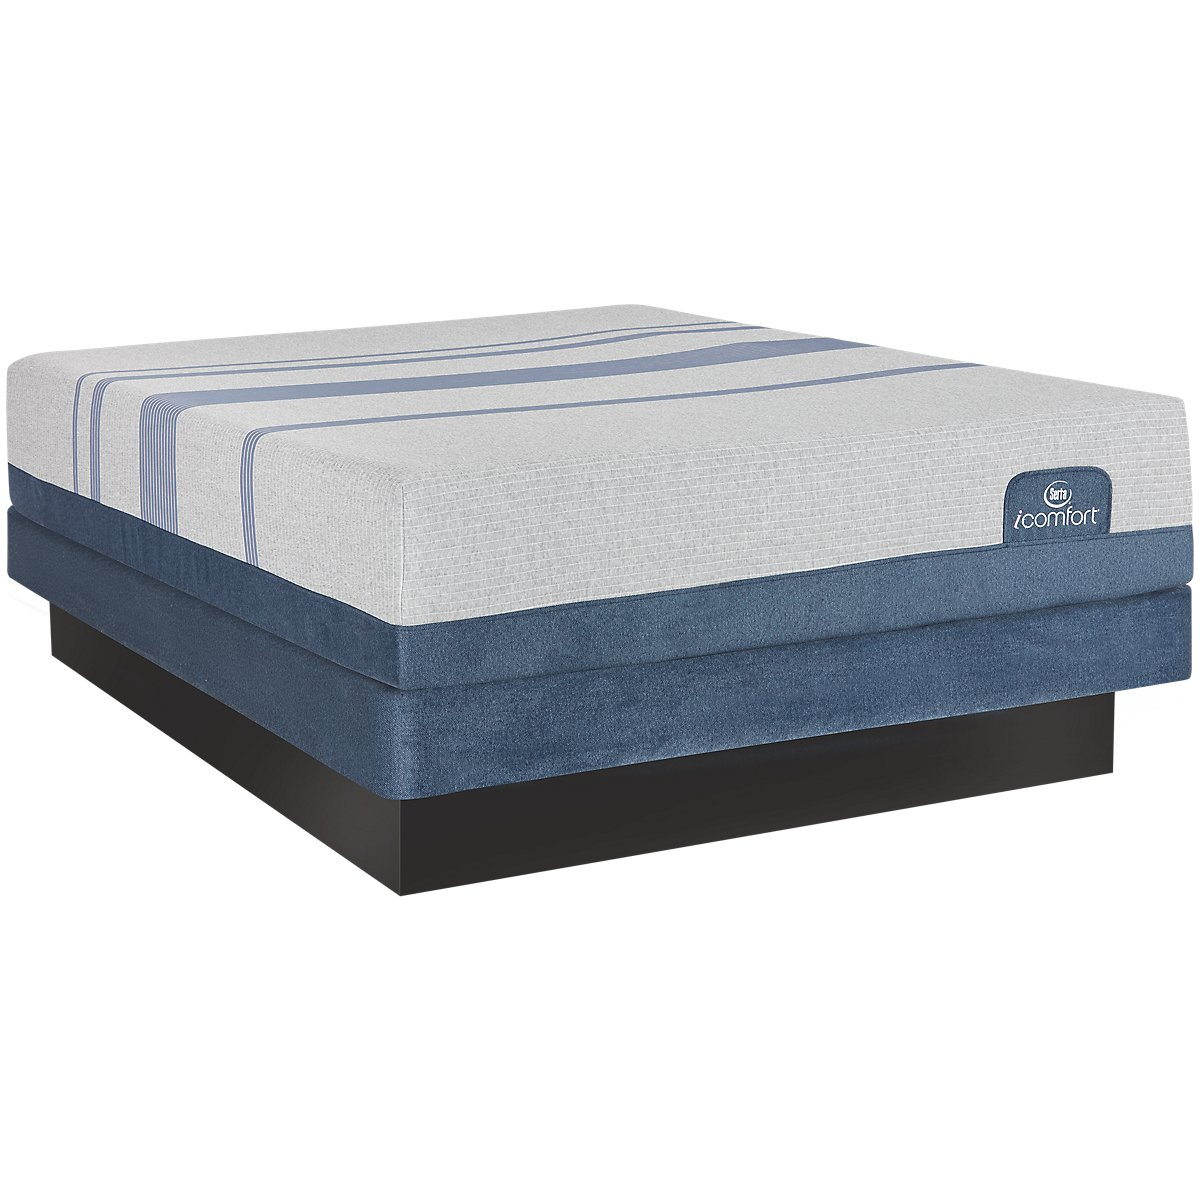 Serta Icomfort Blue Max 1000 Plush Memory Foam Low Profile